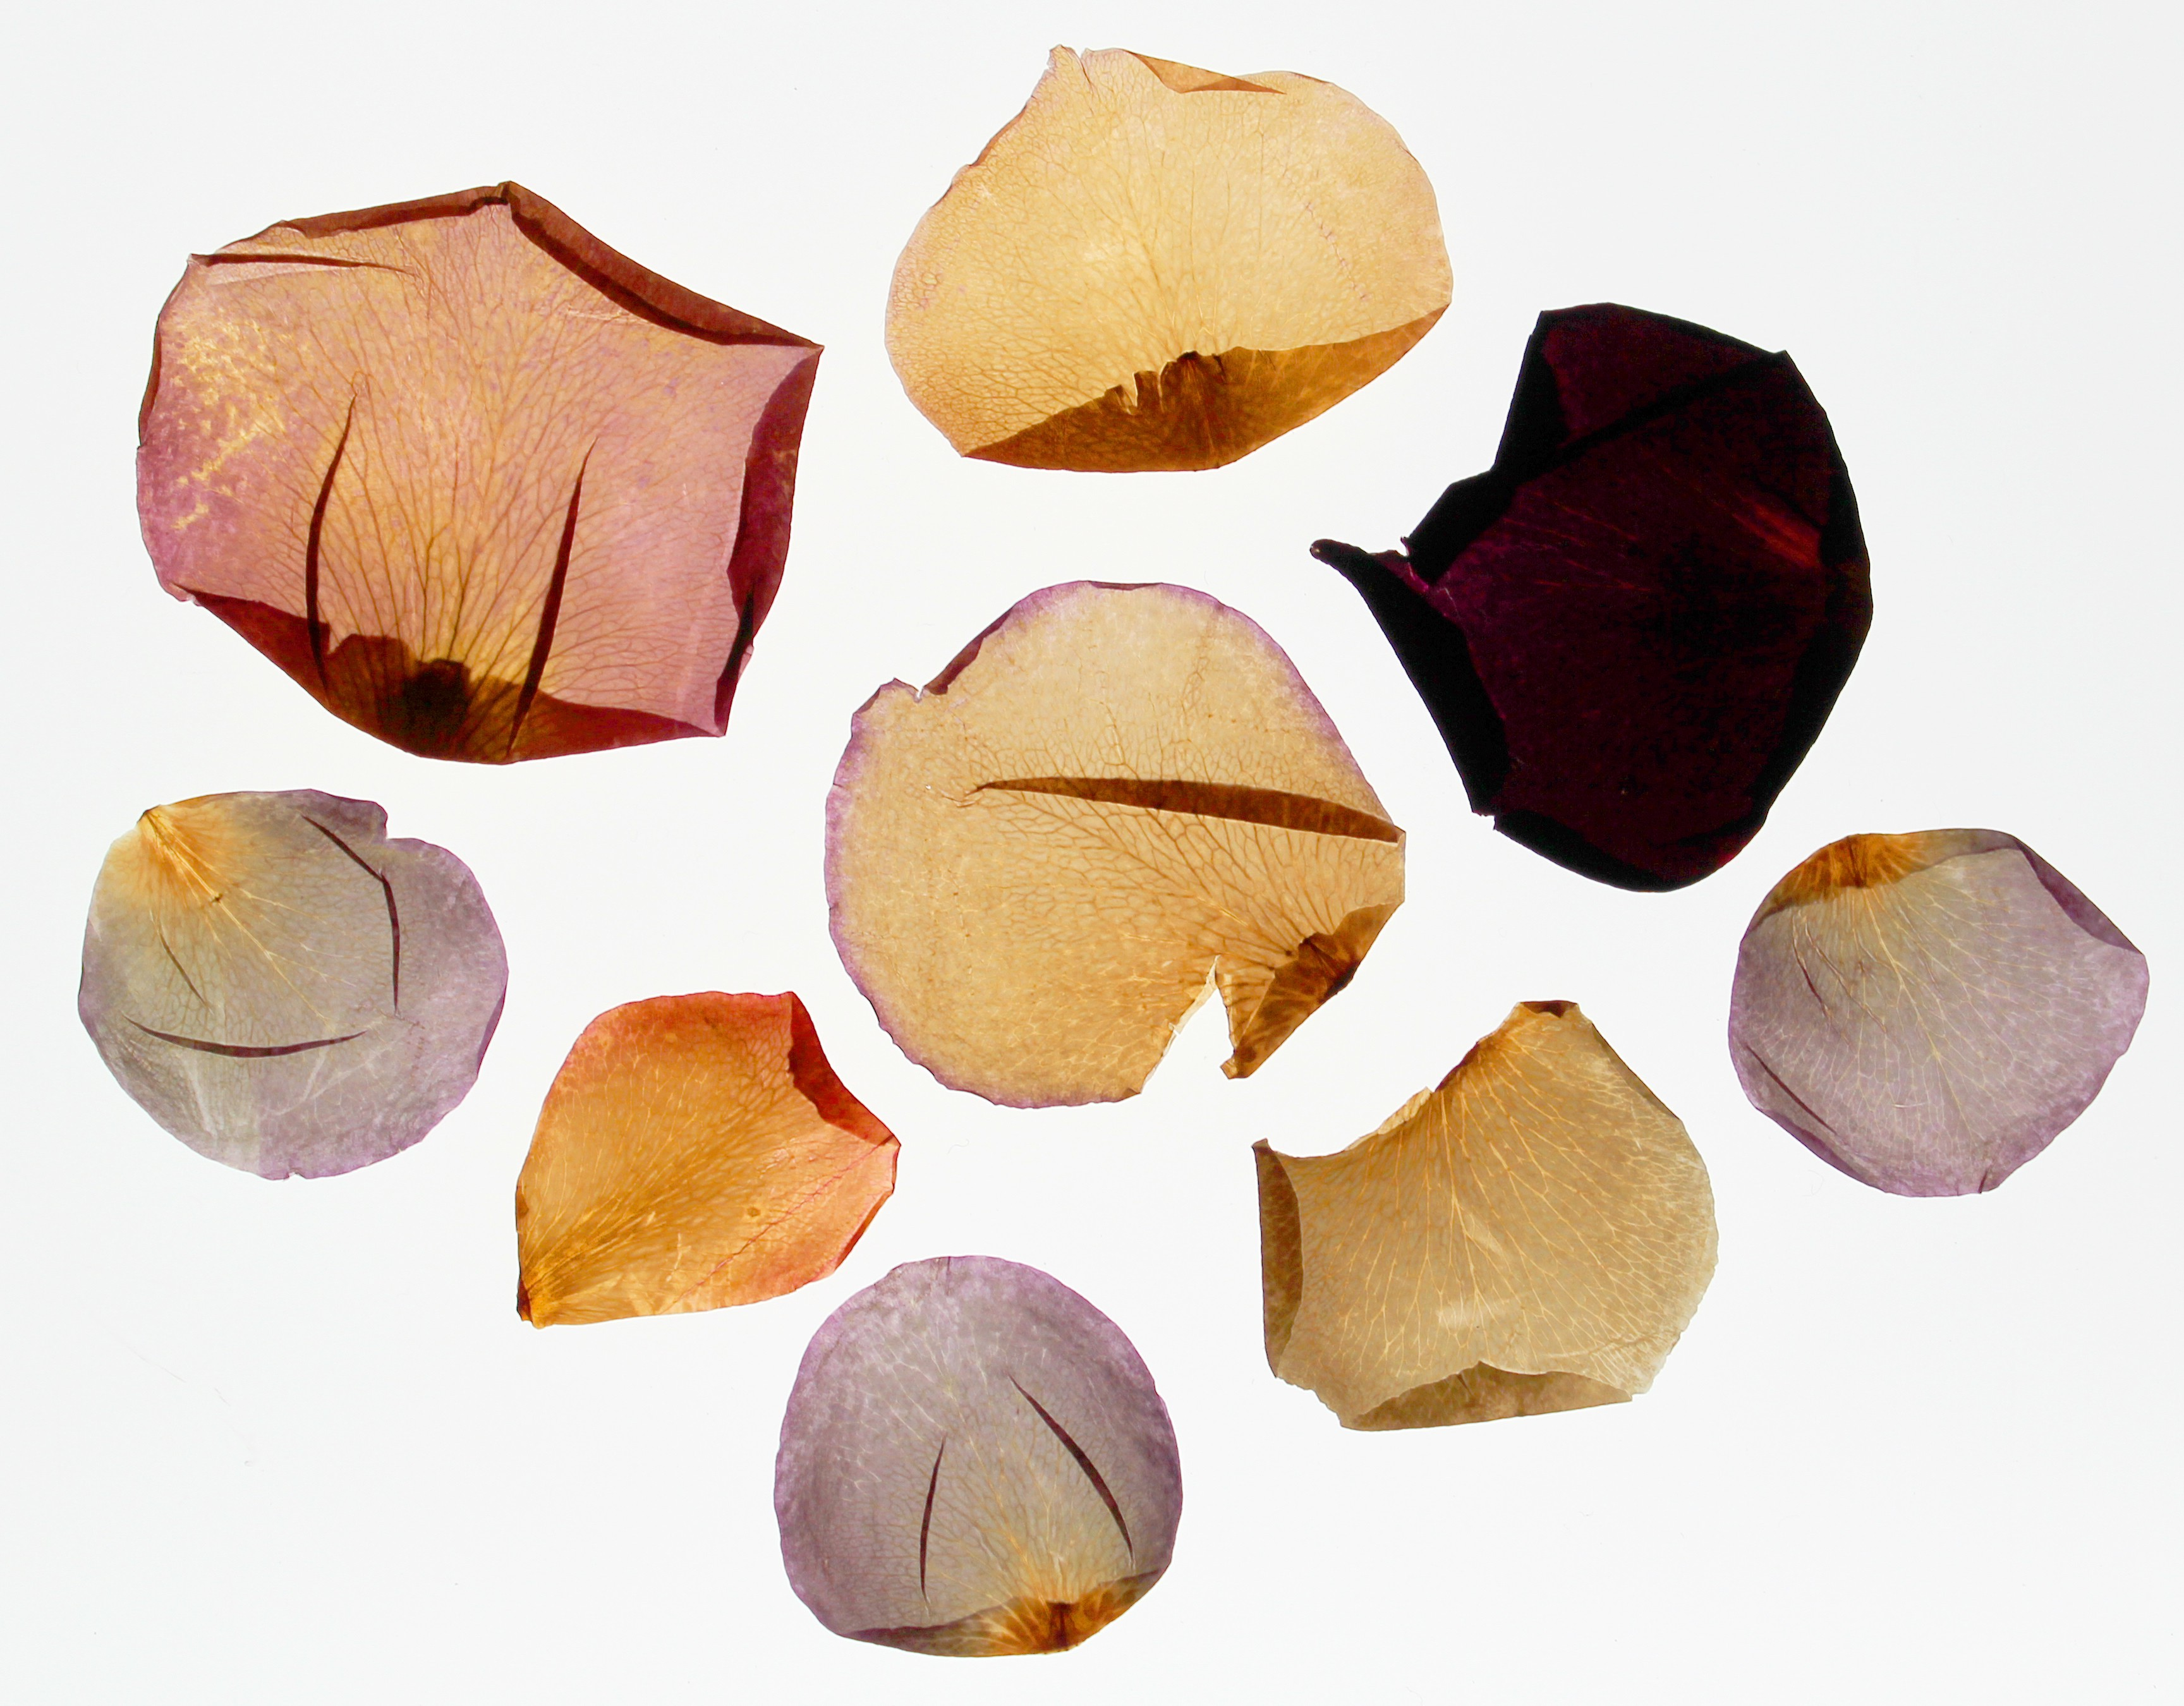 Dried Rose Petals arranged and photographed on a light box